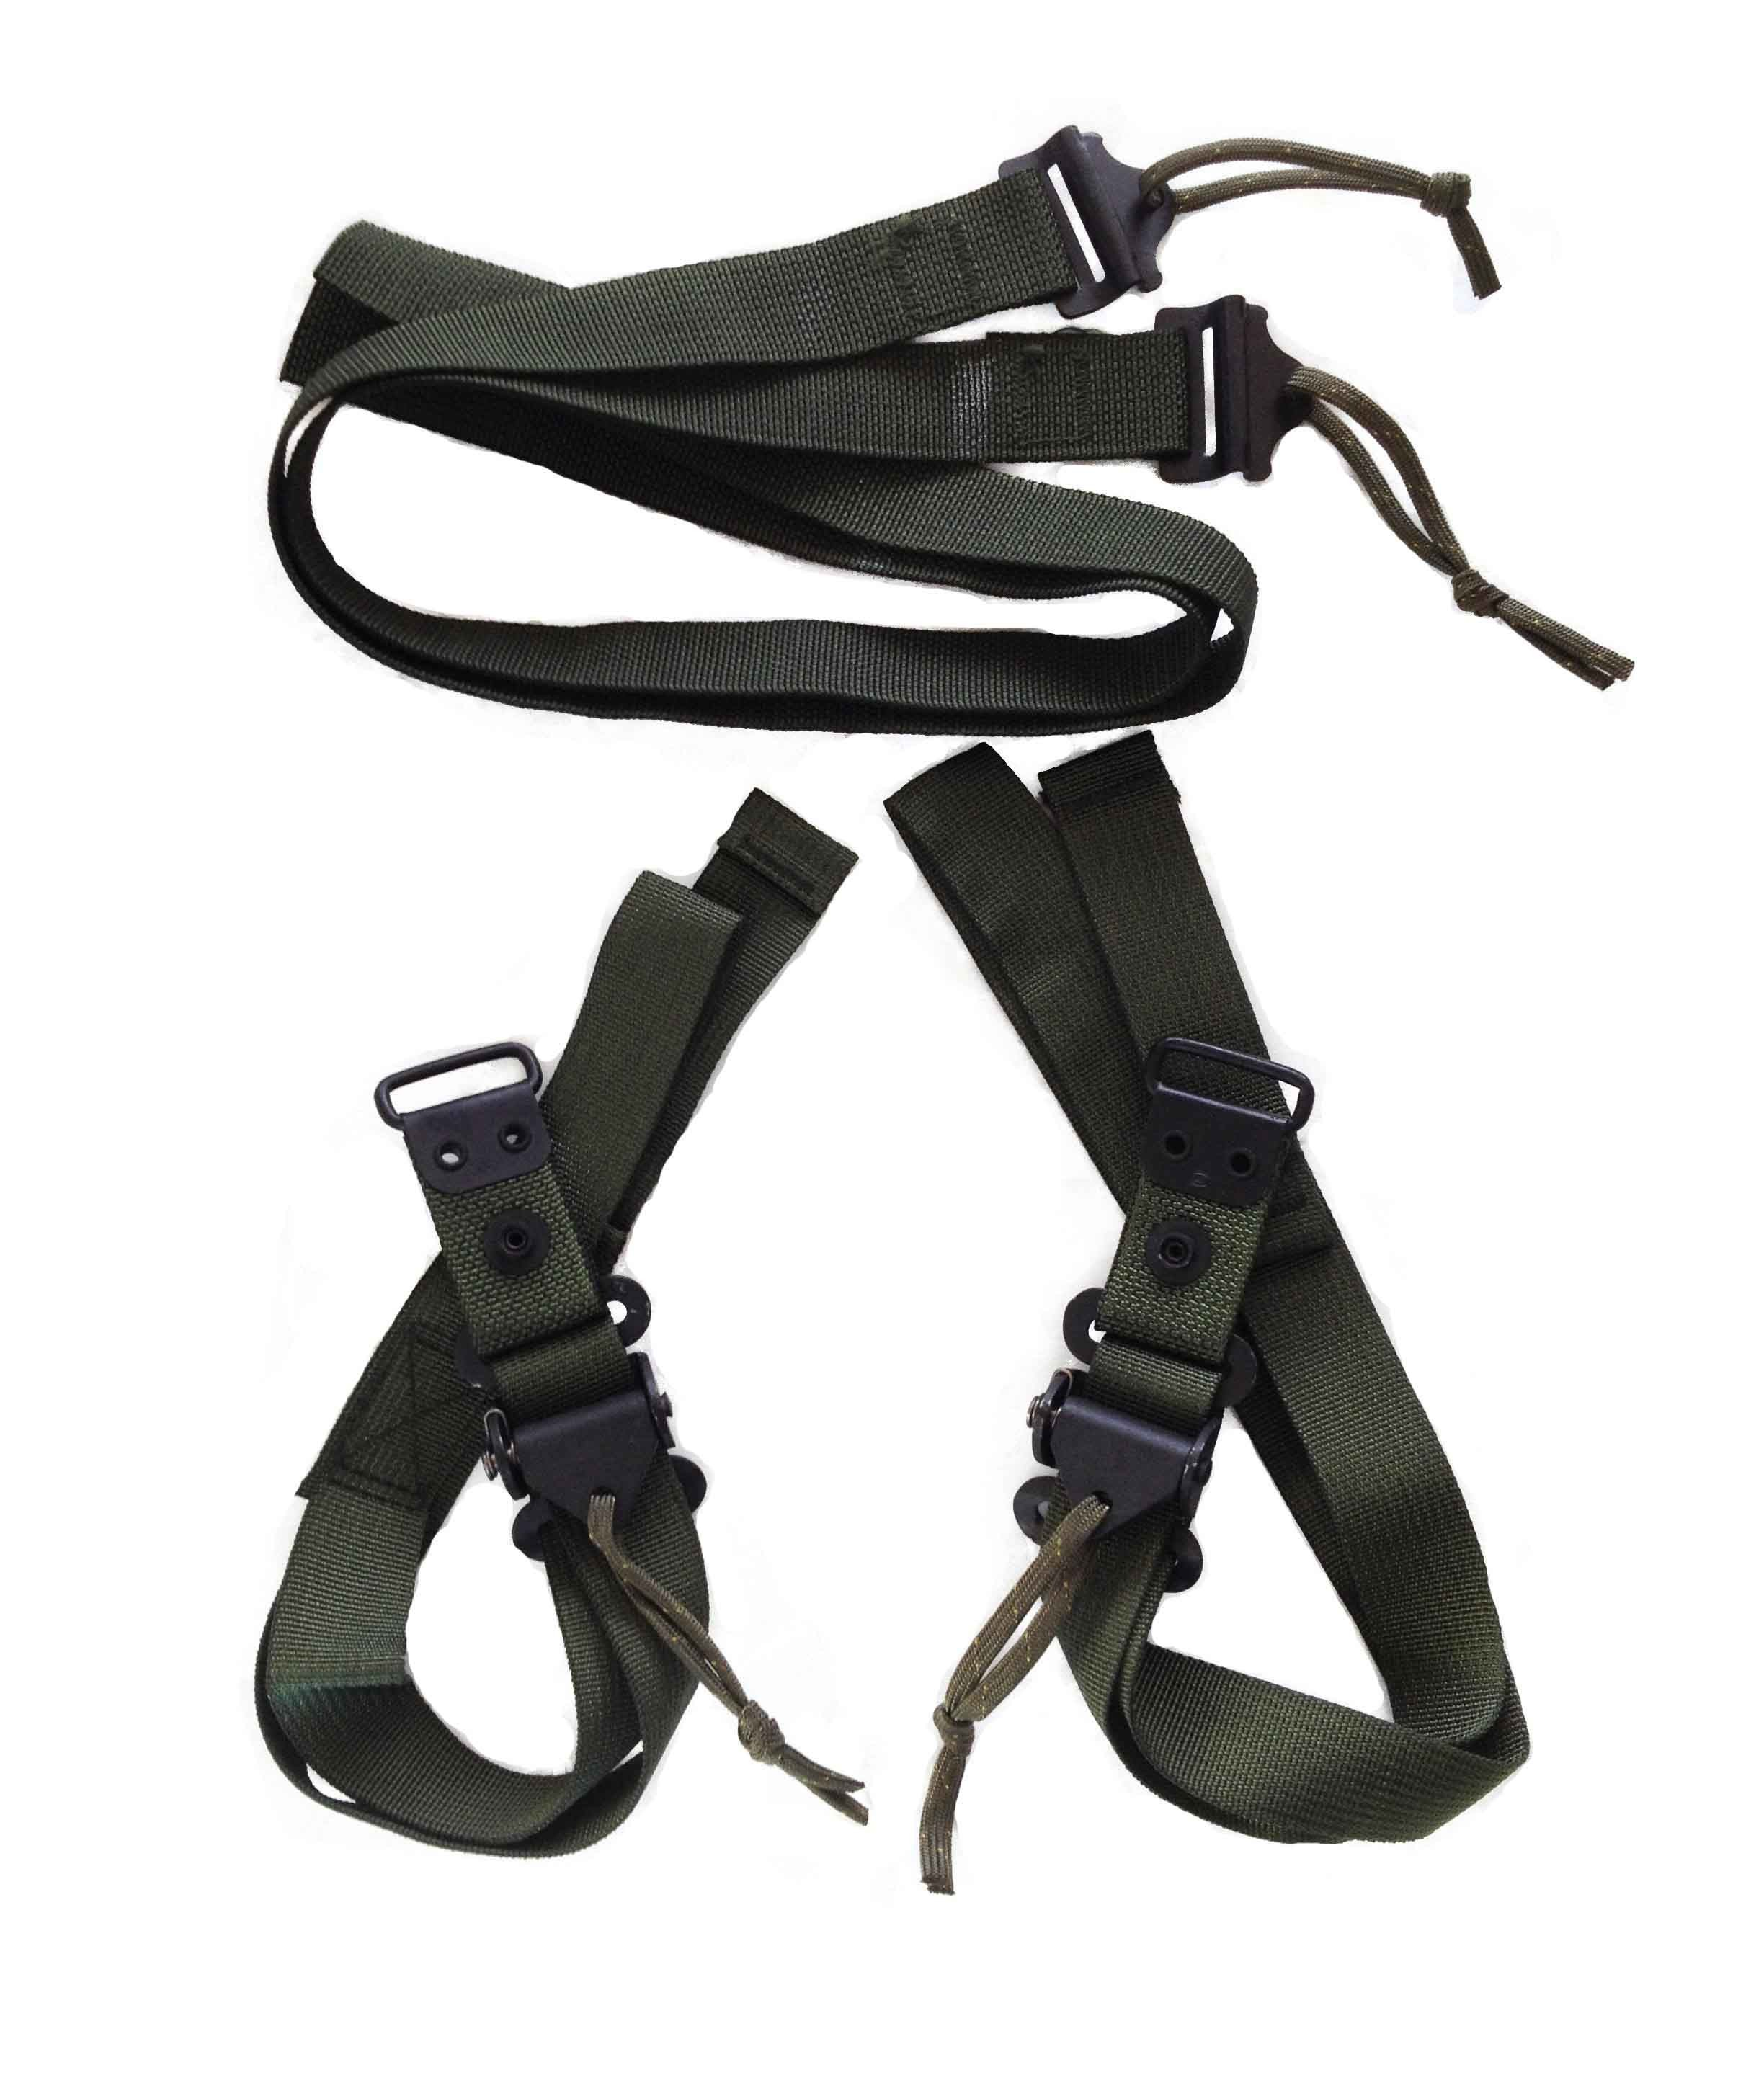 Buy Replacement Backpack Straps - Ken Chad Consulting Ltd